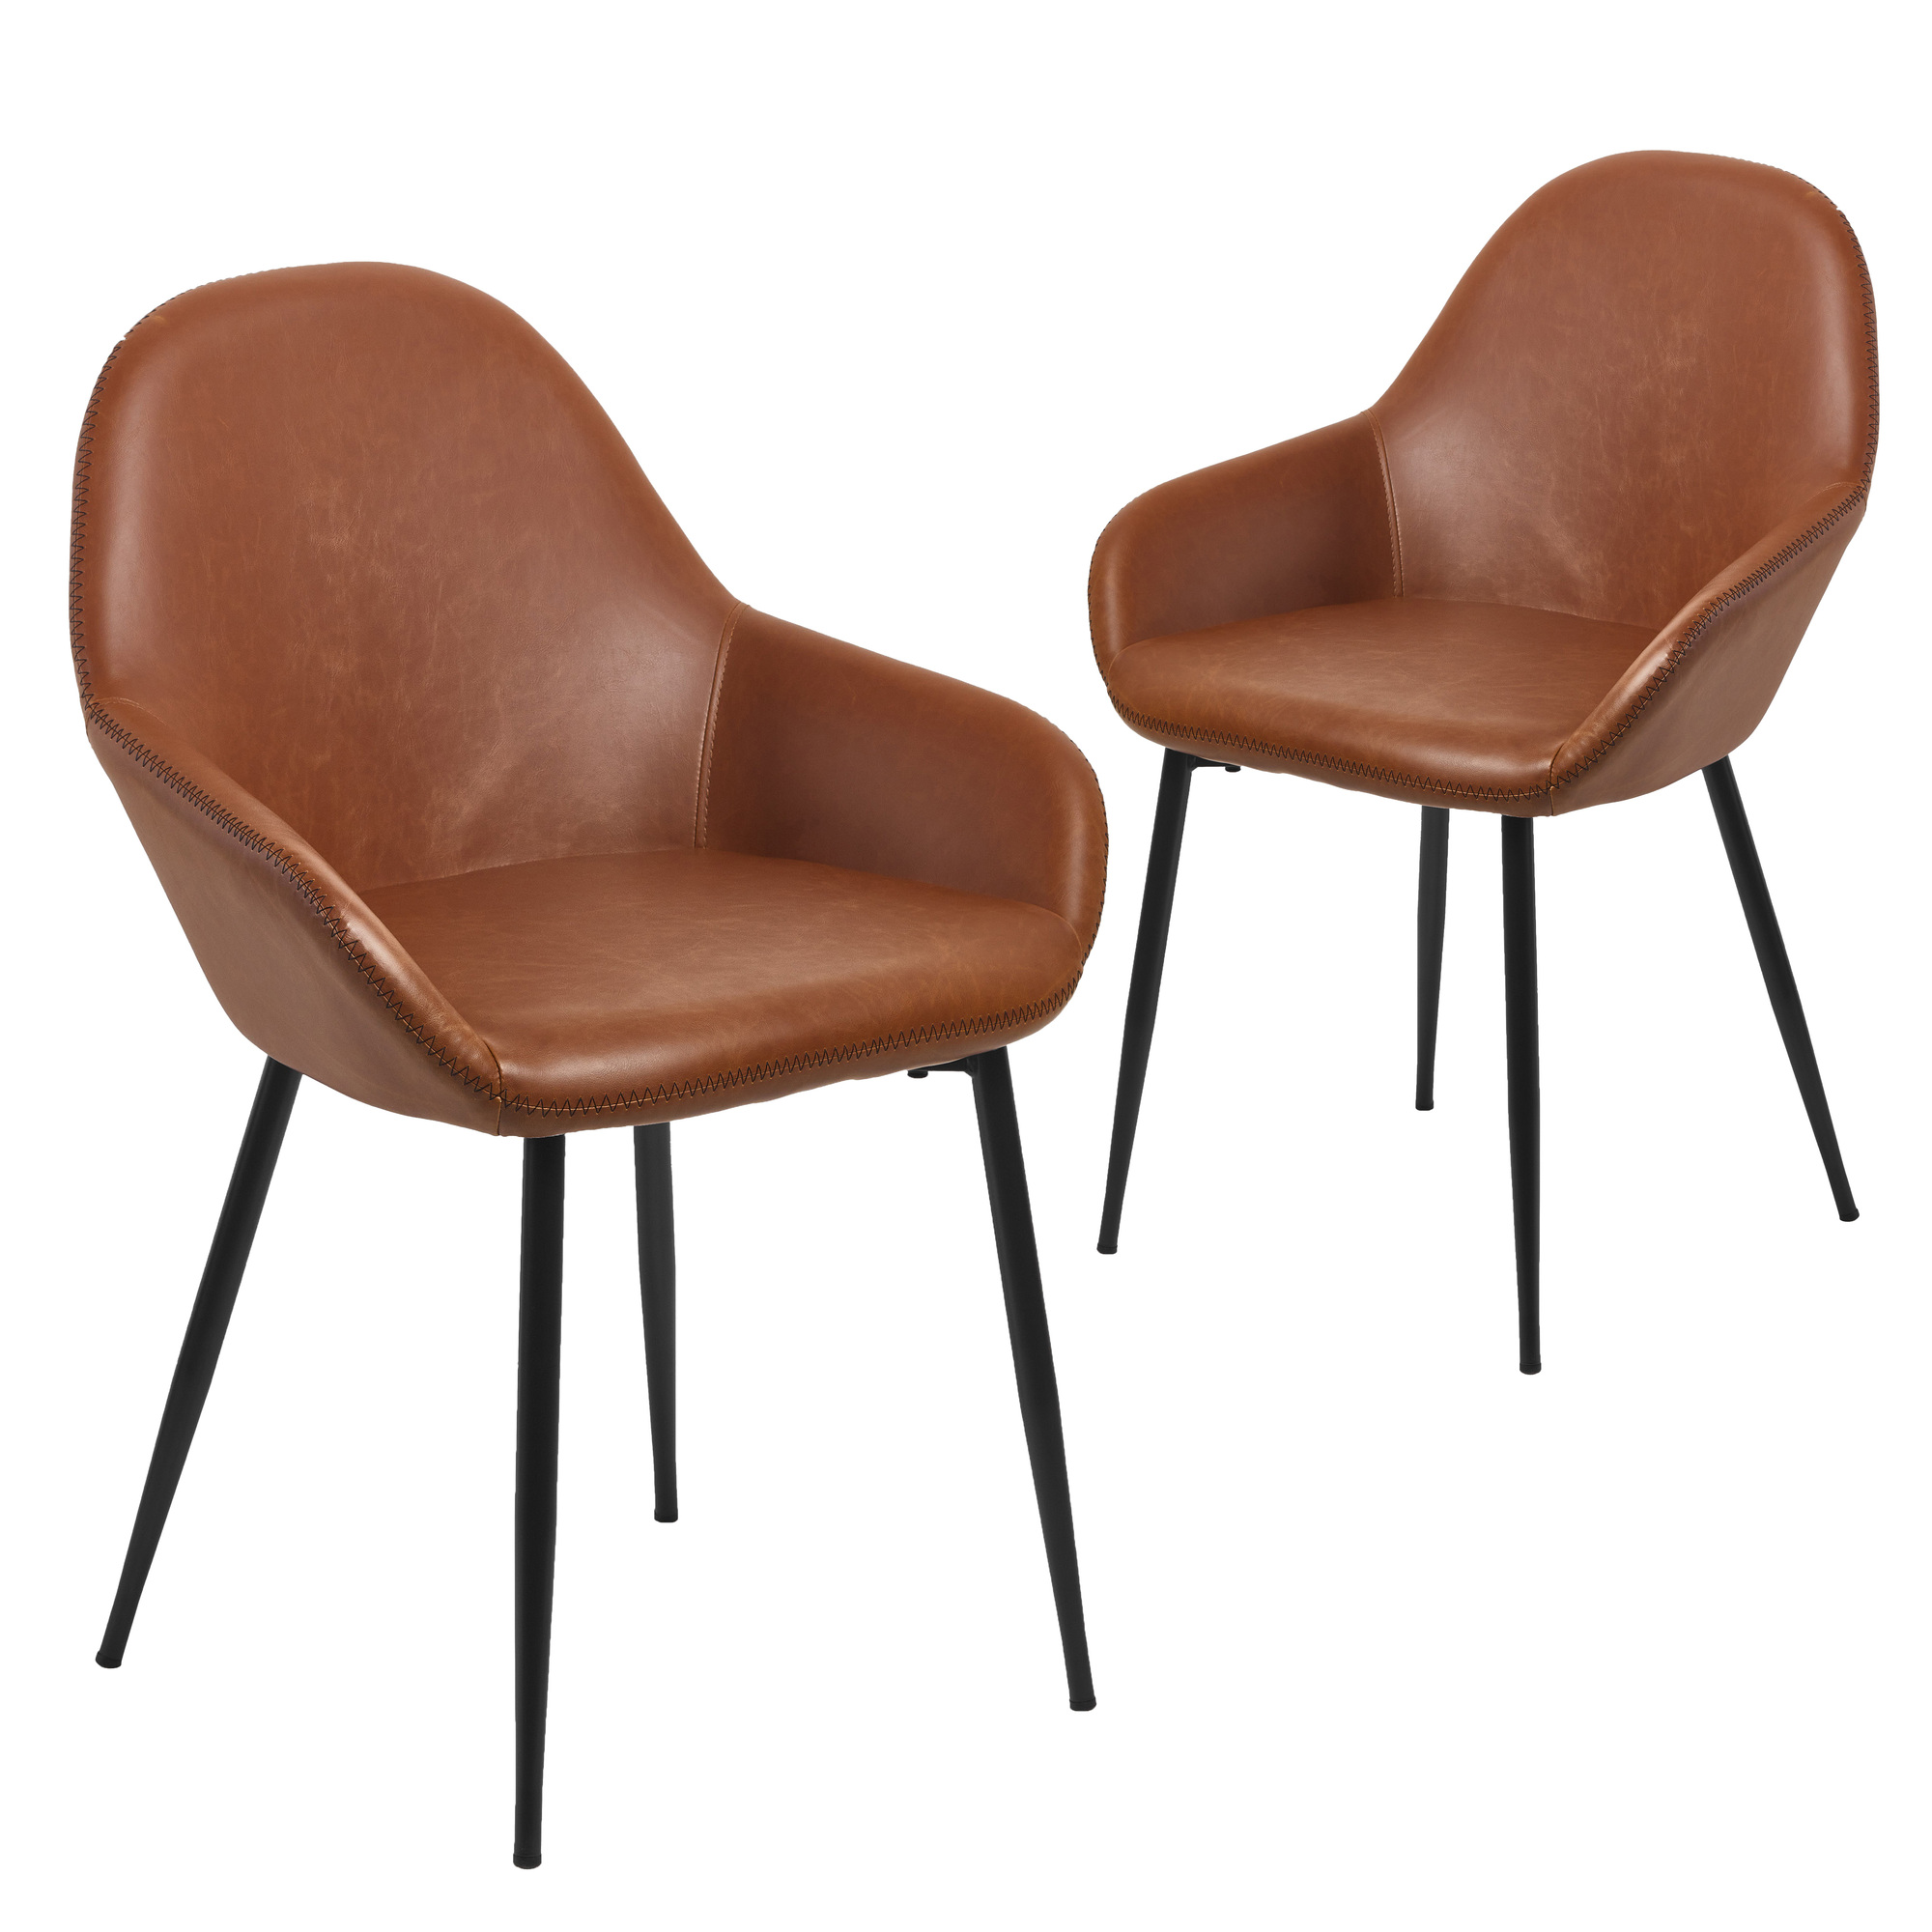 Tan Frankie Faux Leather Dining Chairs Set of 20